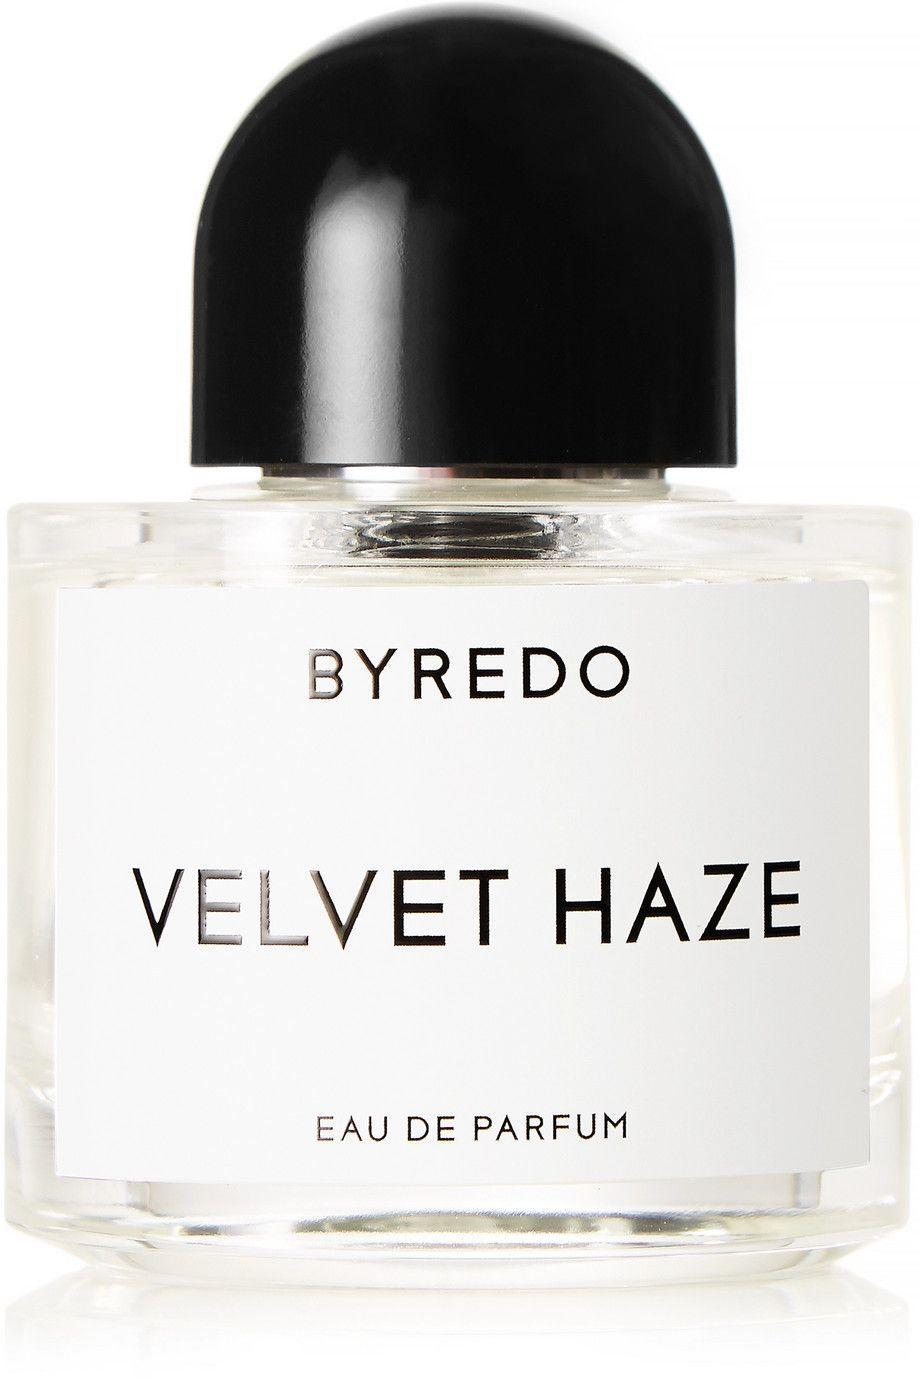 "<p>Byredo fragrances are the ultimate indulgence, and Velvet Haze is my favourite for autumn. The heady musk and patchouli notes are lightened with dashes of coconut and cacao. </p><p><a class=""link rapid-noclick-resp"" href=""https://go.redirectingat.com?id=127X1599956&url=https%3A%2F%2Fwww.net-a-porter.com%2Fgb%2Fen%2Fproduct%2F1037787&sref=http%3A%2F%2Fwww.cosmopolitan.com%2Fuk%2Fbeauty-hair%2Fg23448484%2Fnet-a-porter-beauty-products%2F"" rel=""nofollow noopener"" target=""_blank"" data-ylk=""slk:buy now"">buy now</a></p>"